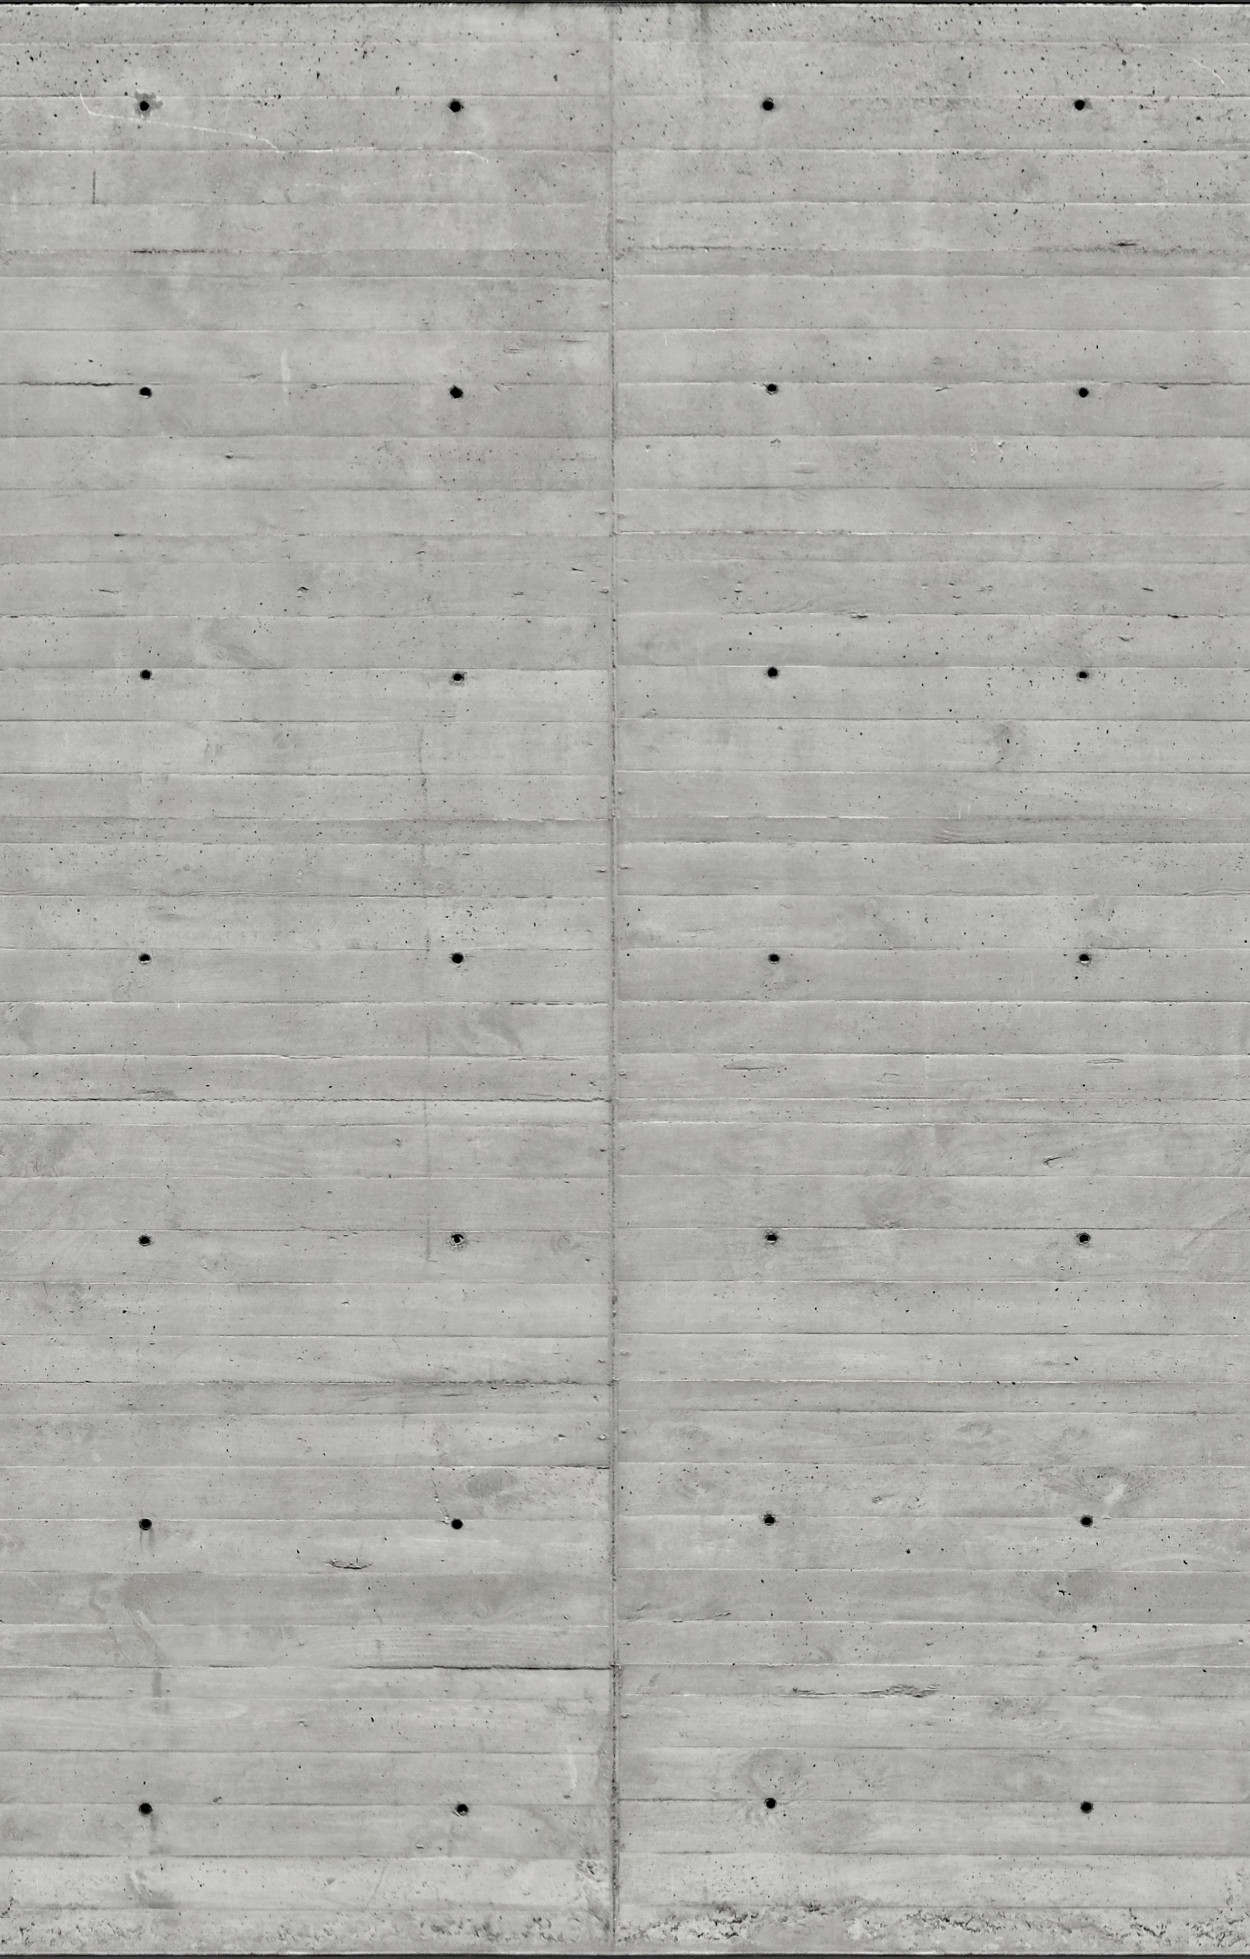 A seamless concrete texture with  blocks arranged in a  pattern